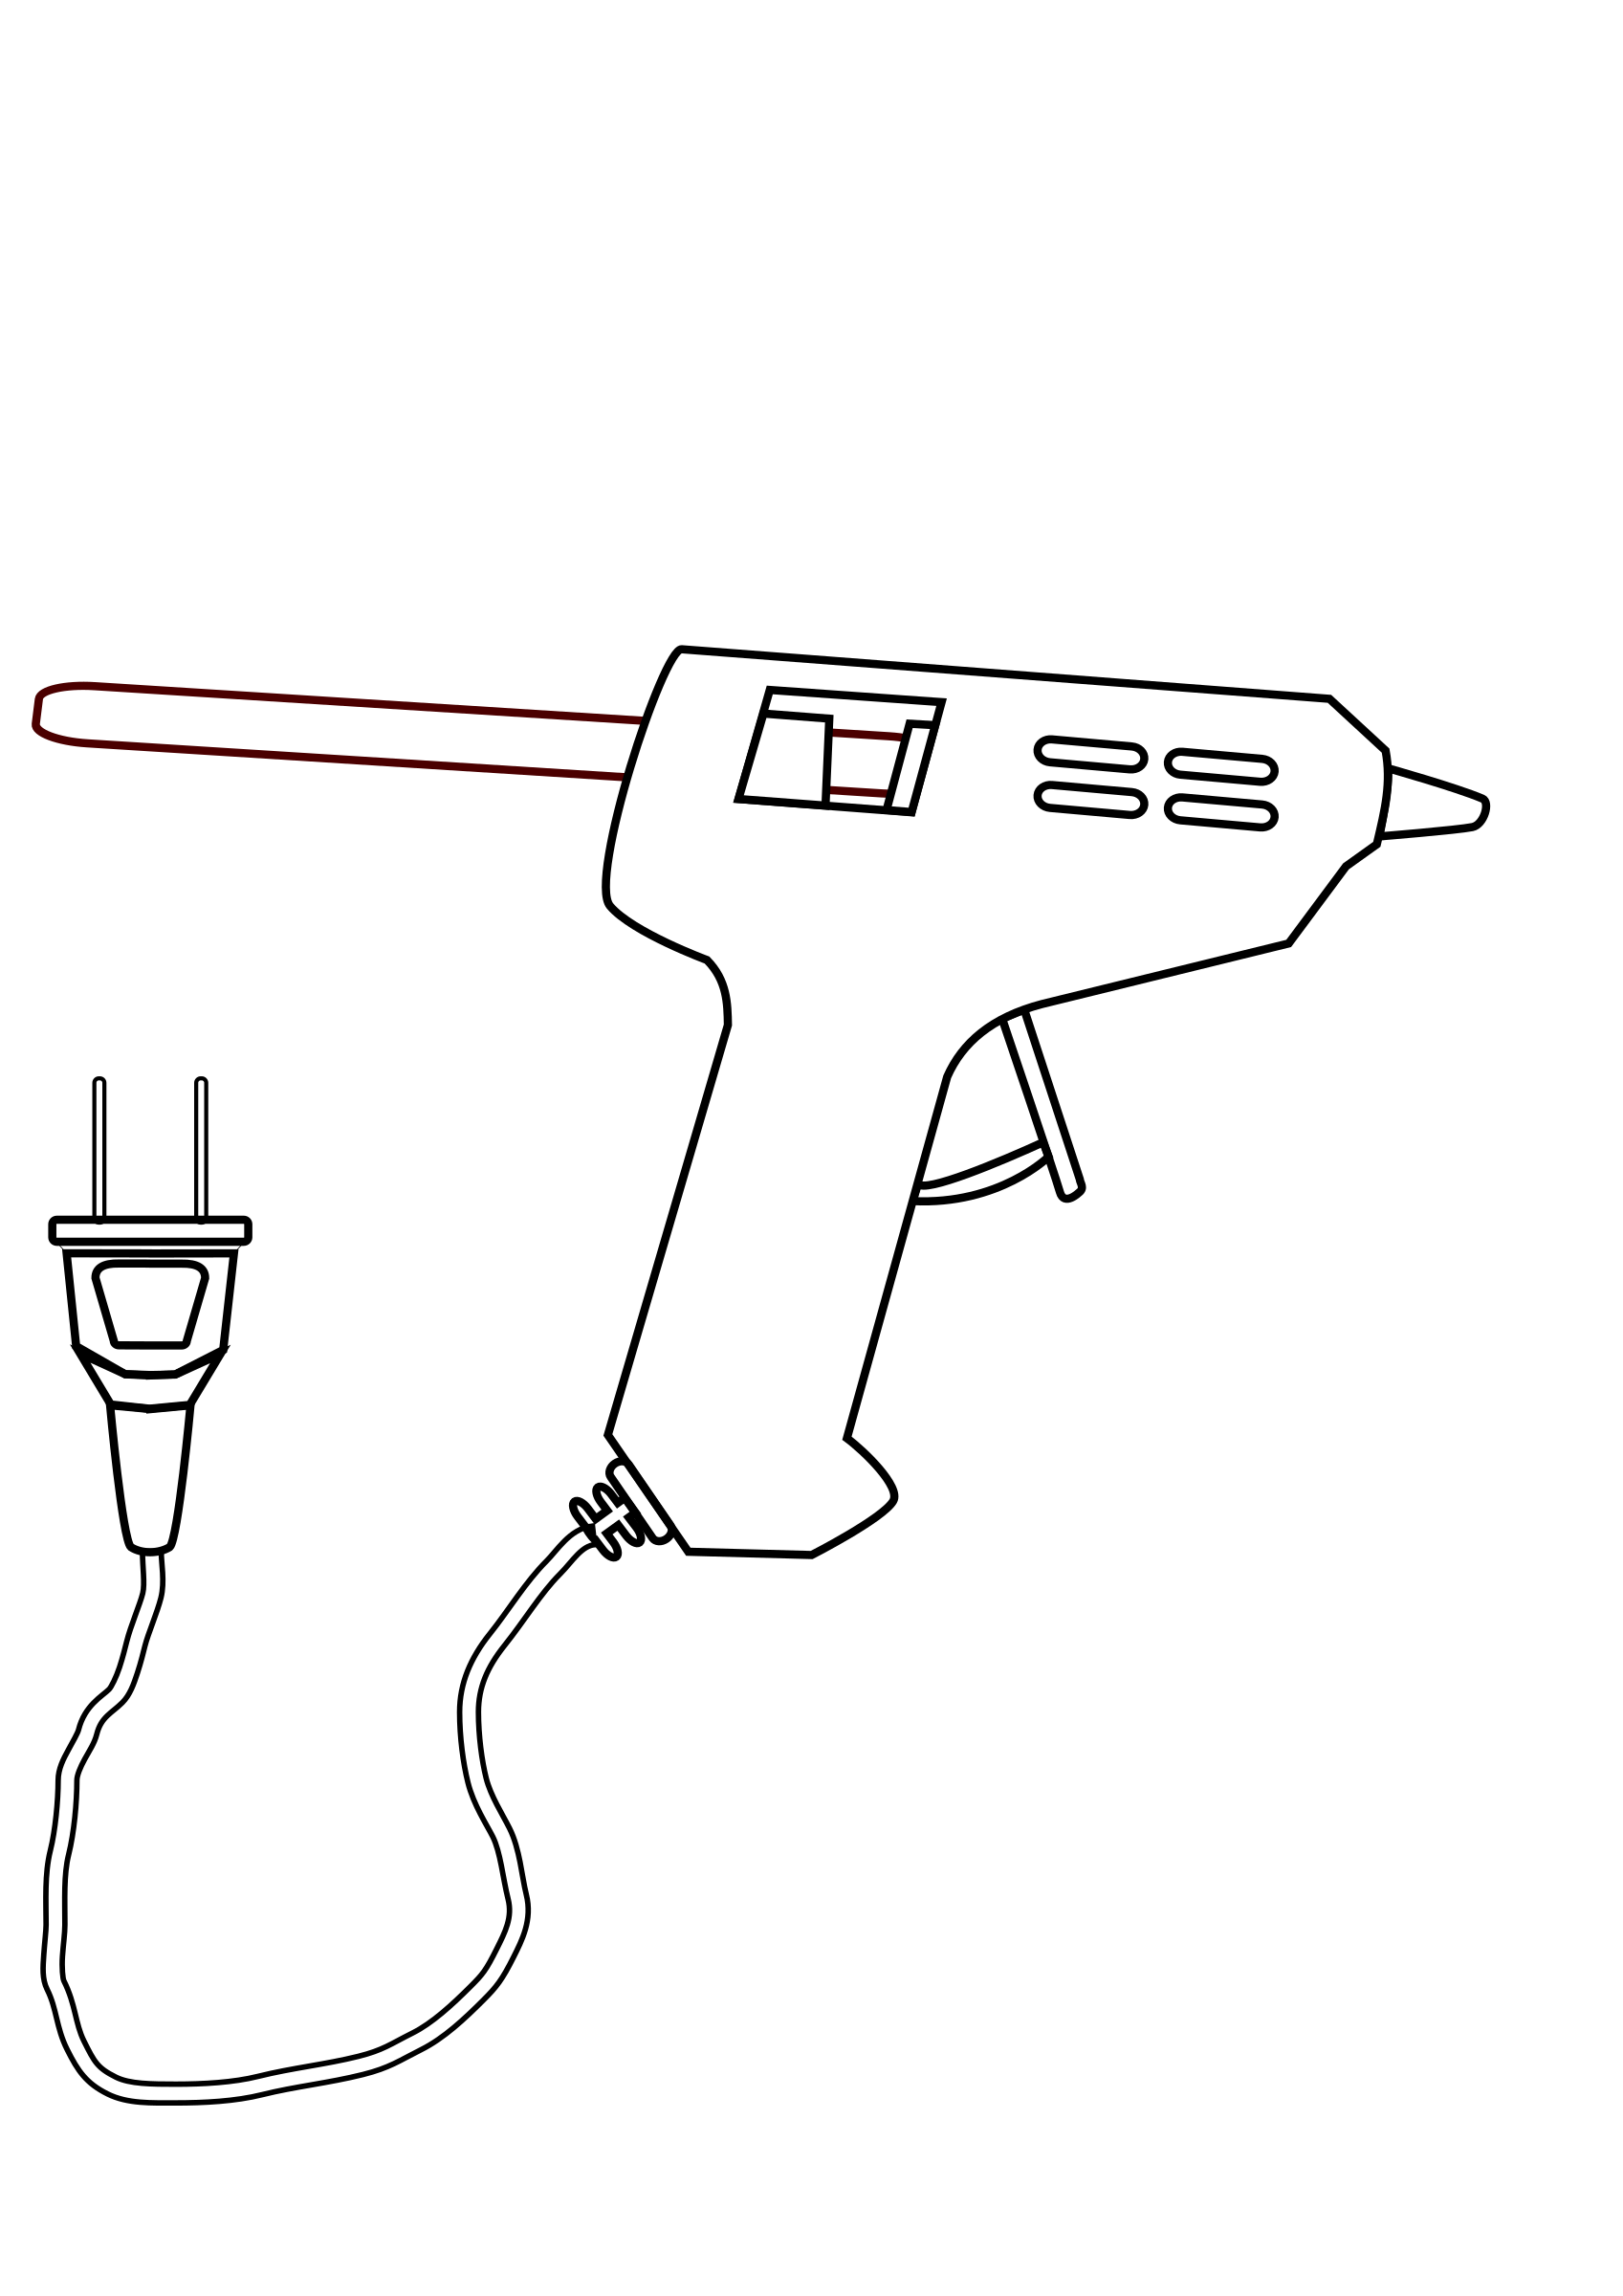 tool hot glue gun drawing coloring by ABSOLUTELYAUTOMATION